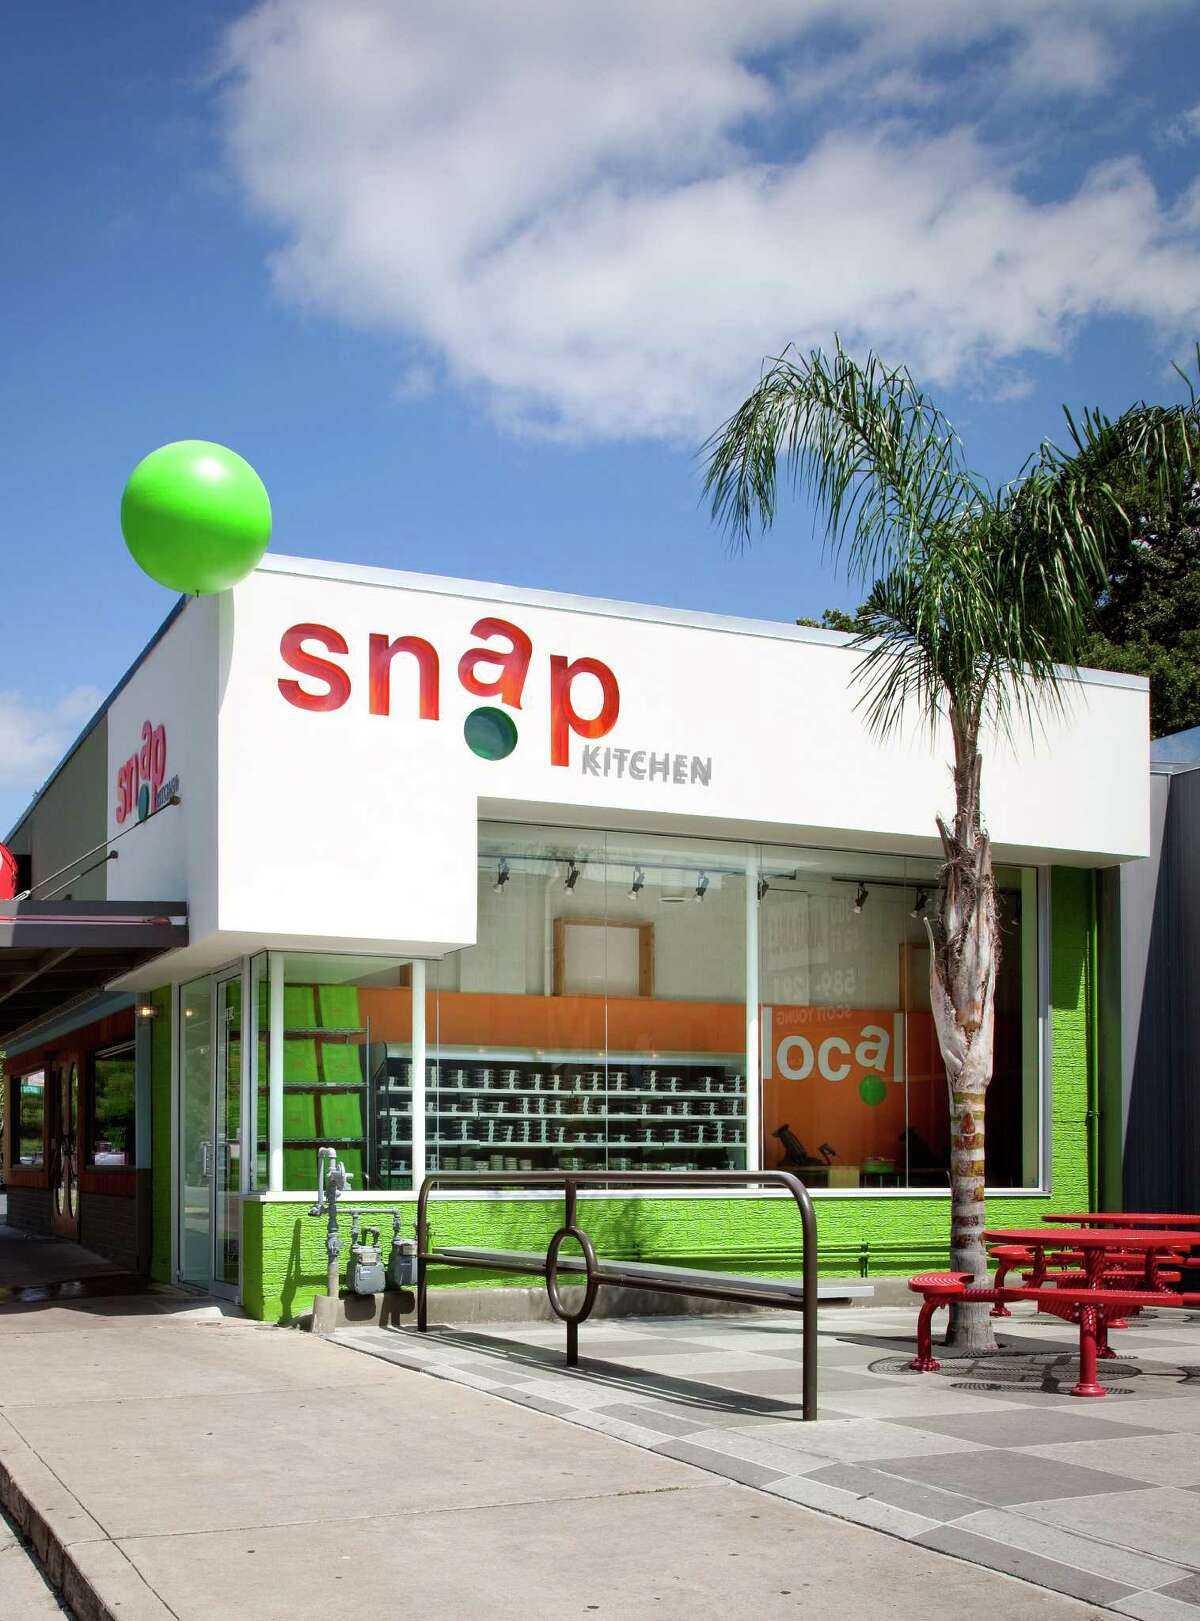 Snap Kitchen has rebranded itself with new store redesigns,a modernized logo, and new packaging. This is the old look.